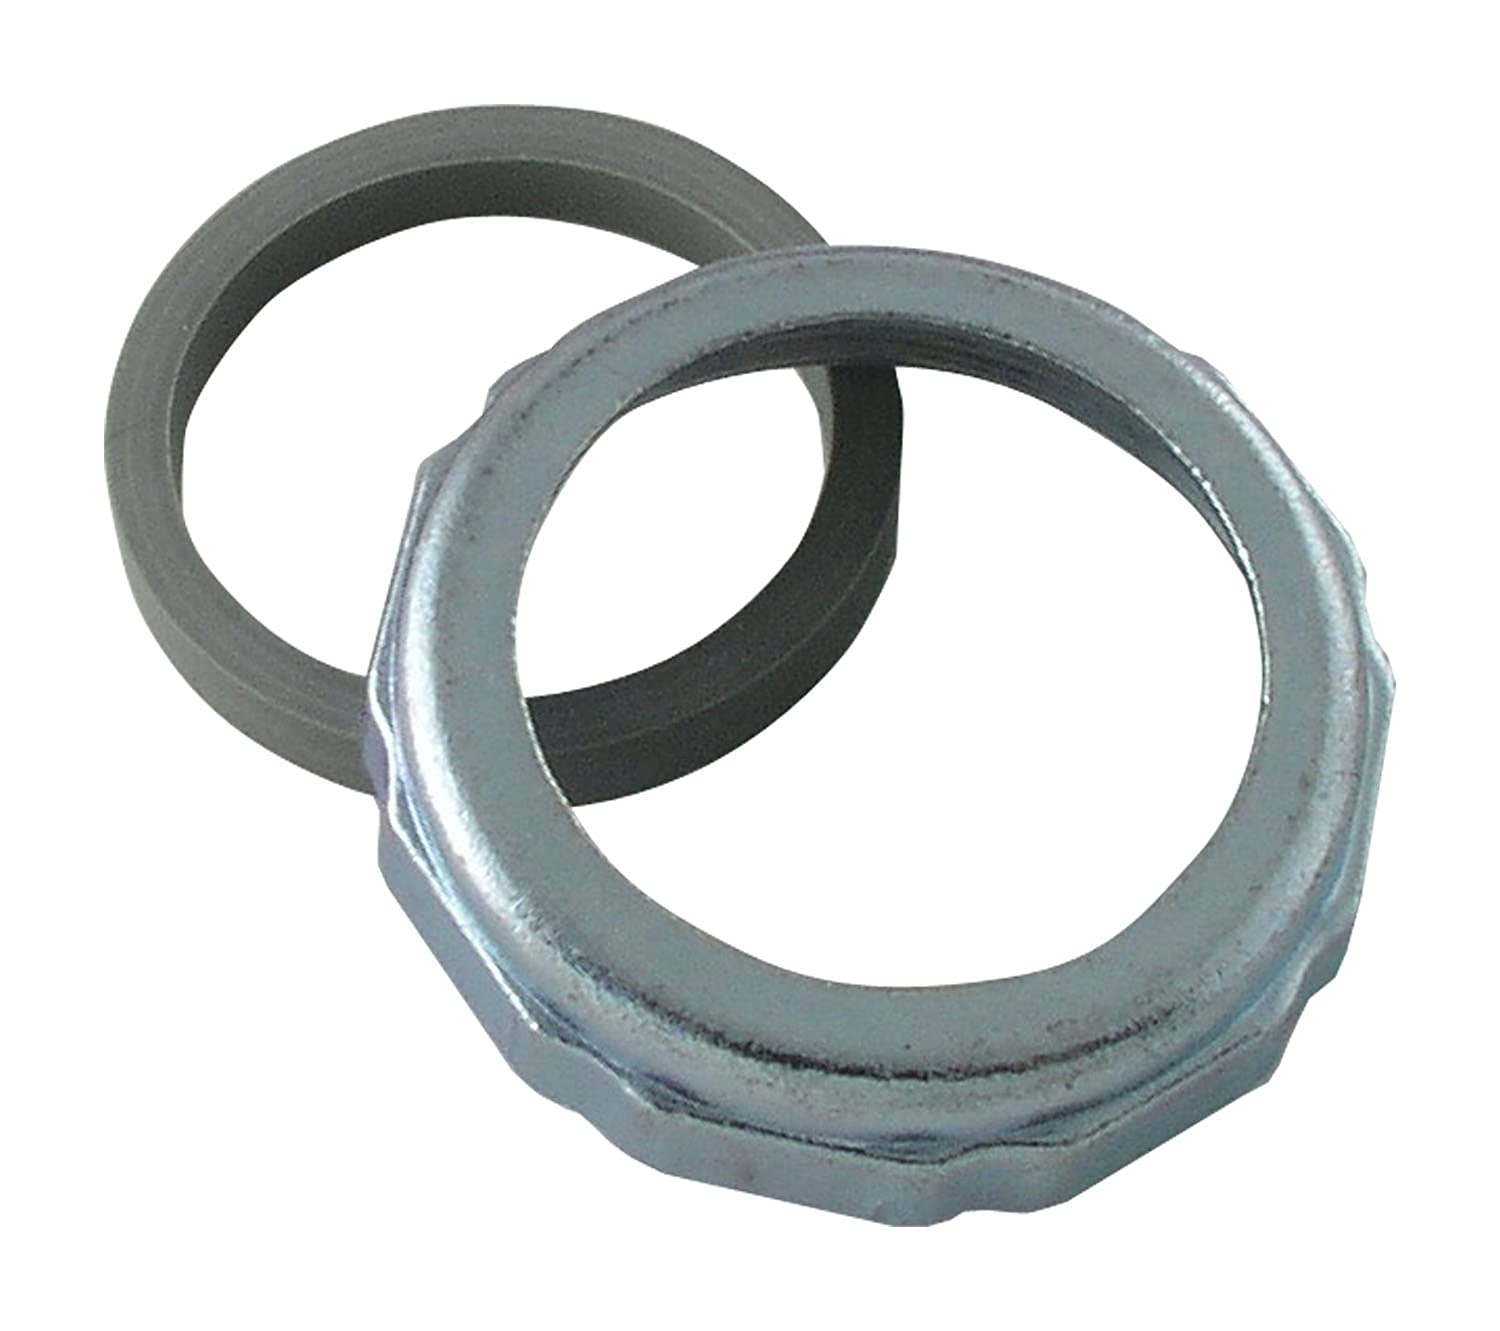 LDR Industries 505 6520 Washers, 1 1/4', Silver 1 1/4